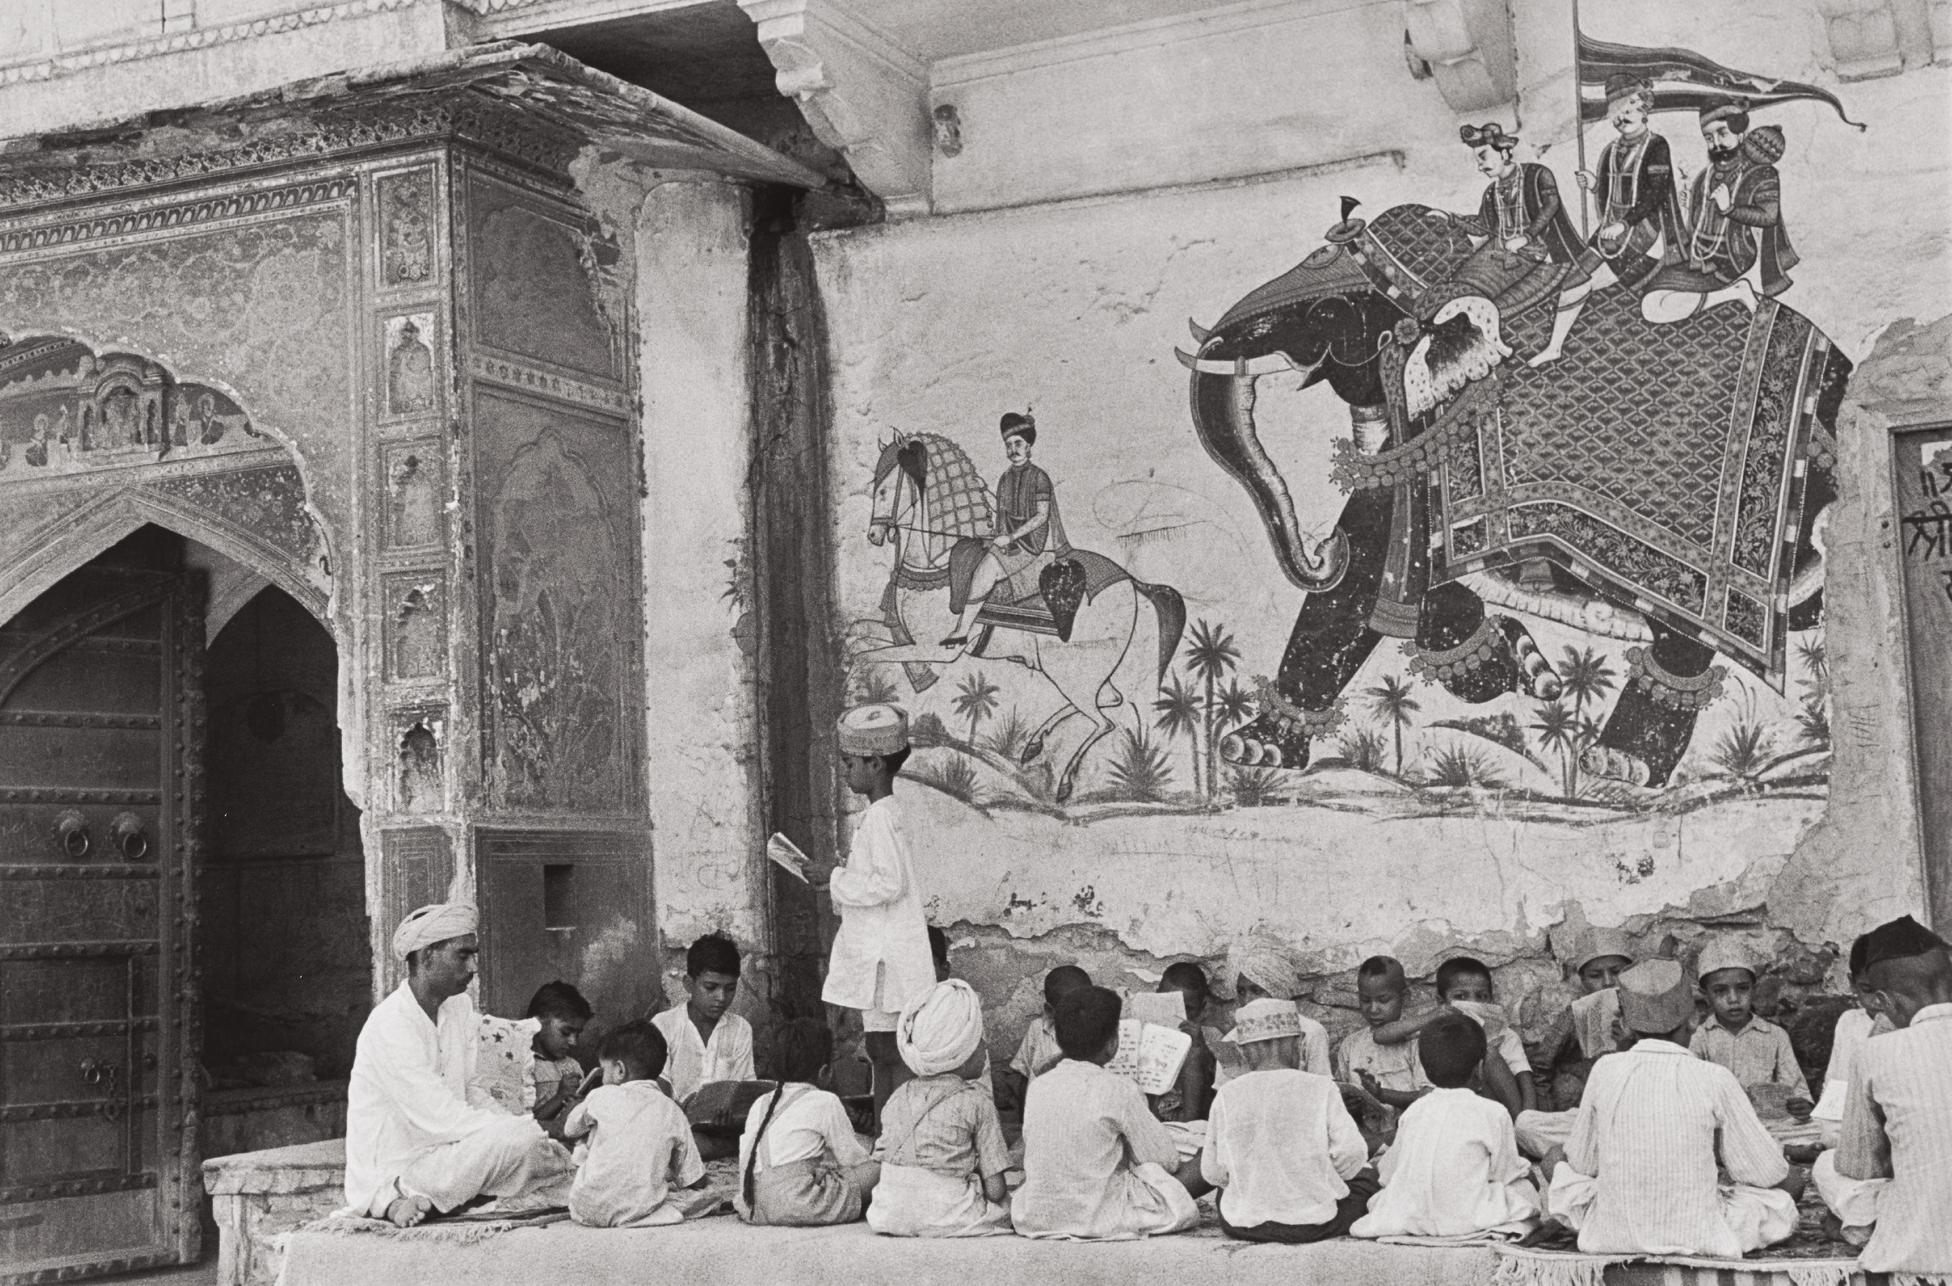 Henri Cartier-Bresson-Pavement School, Jaipur, India-1948